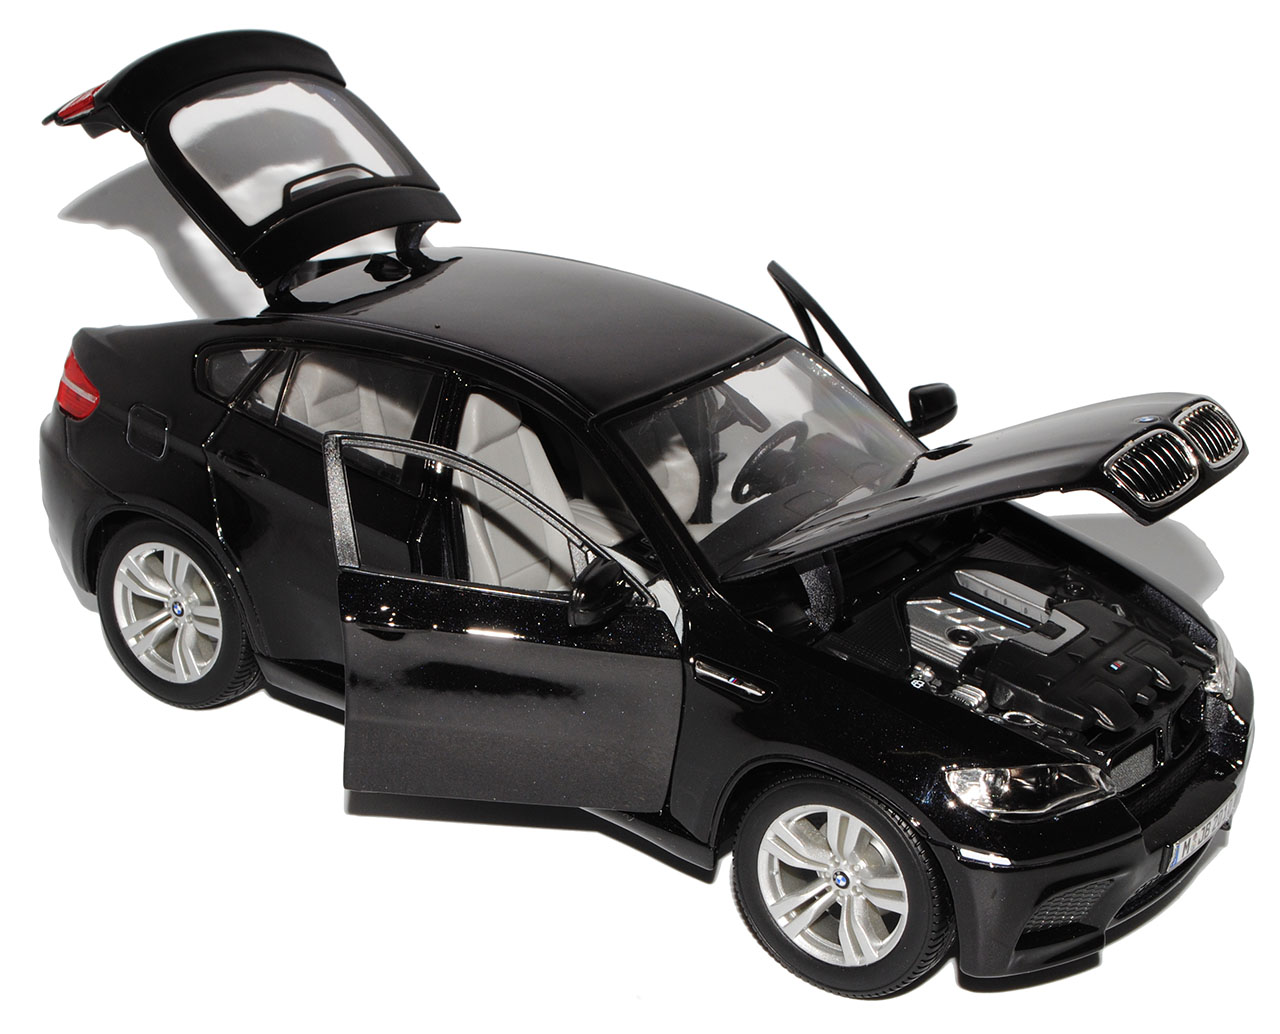 bmw x6 e71 suv schwarz 2008 2014 1 18 bburago modell auto. Black Bedroom Furniture Sets. Home Design Ideas